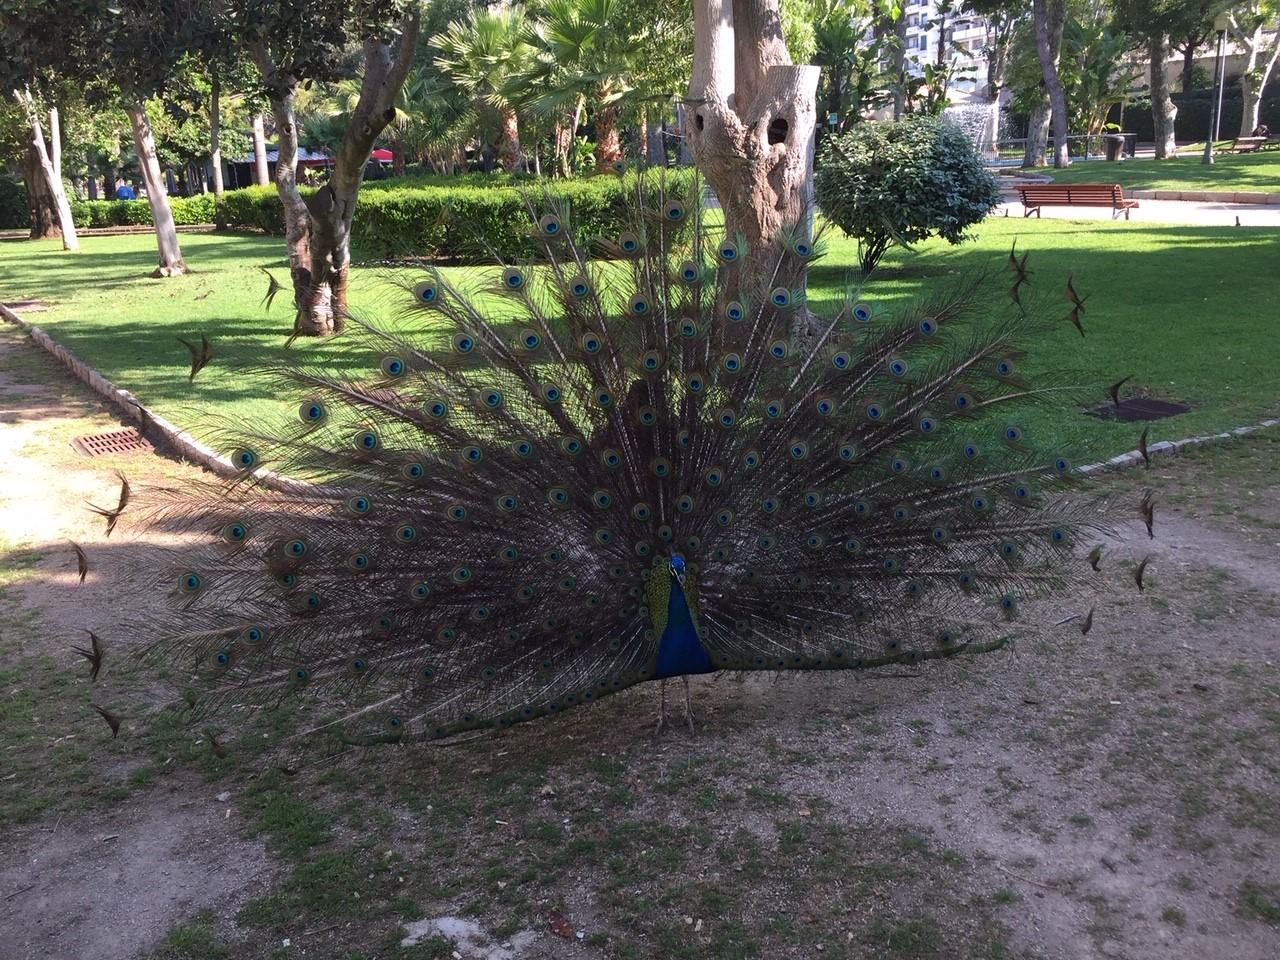 Peacocks in Faro